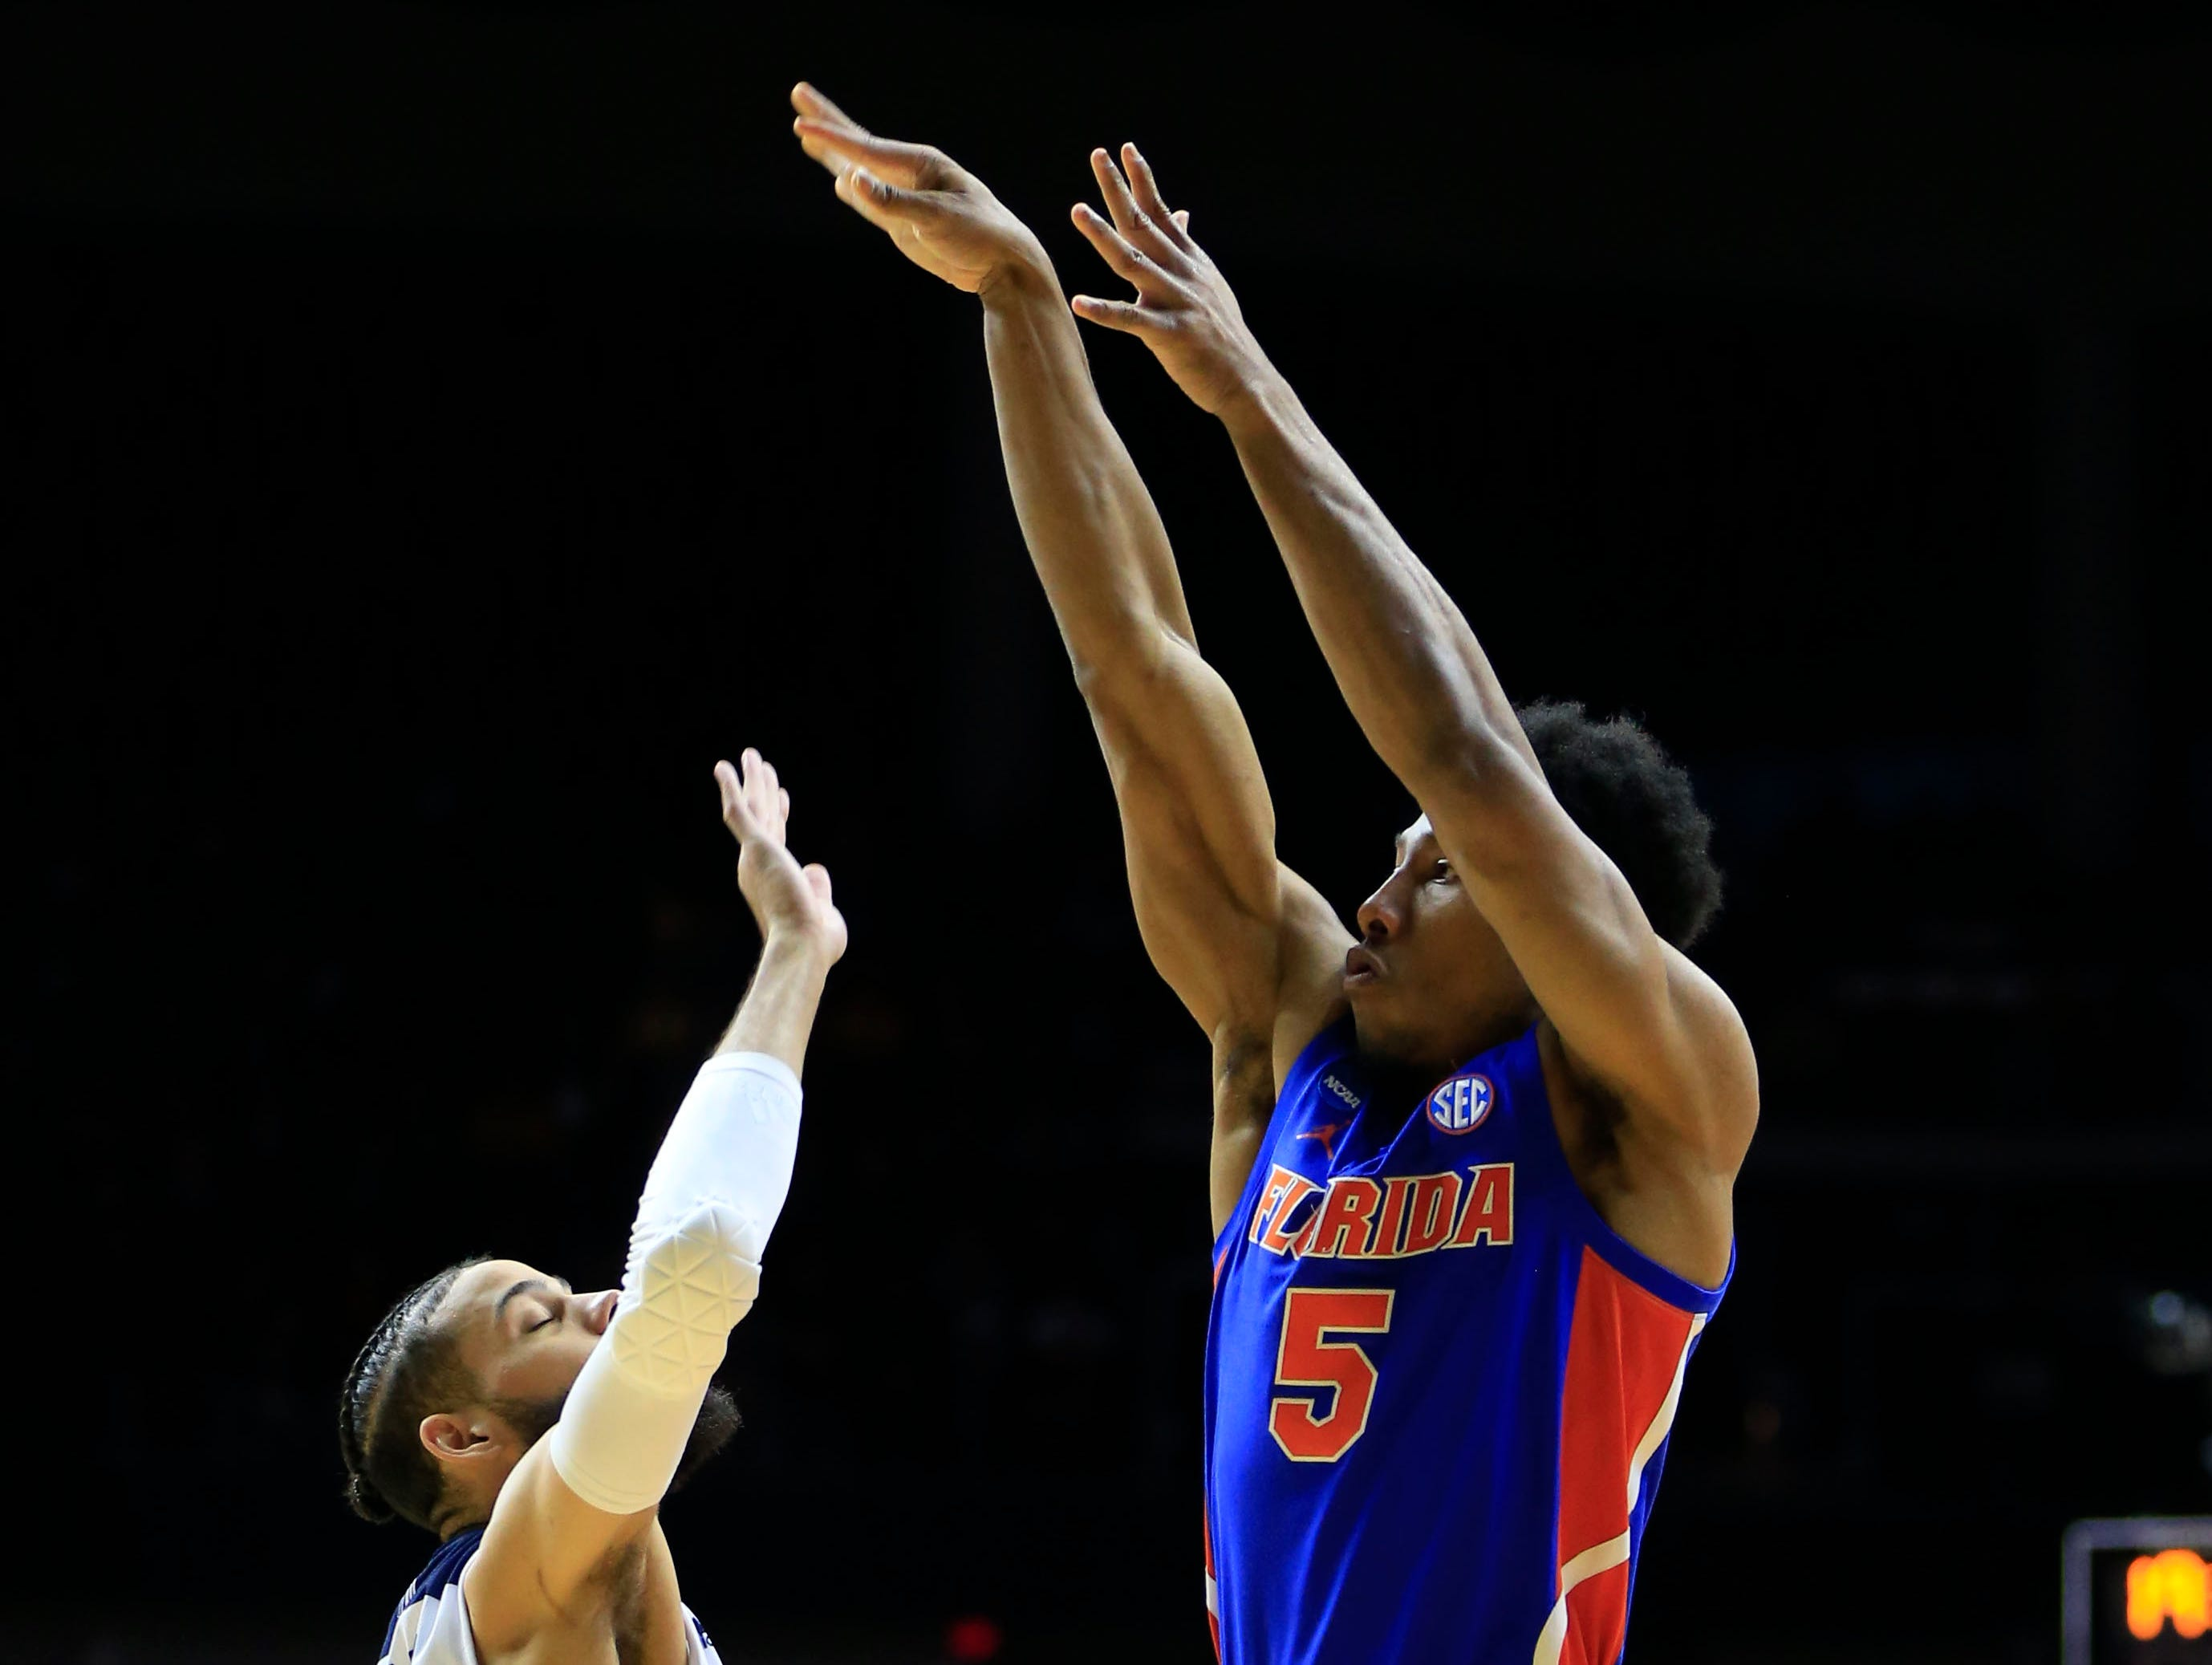 Florida guard KeVaughn Allen puts up a shot during a NCAA Division I Men's Basketball Championship First Round game against Nevada on Thursday, March 21, 2019 in Des Moines.